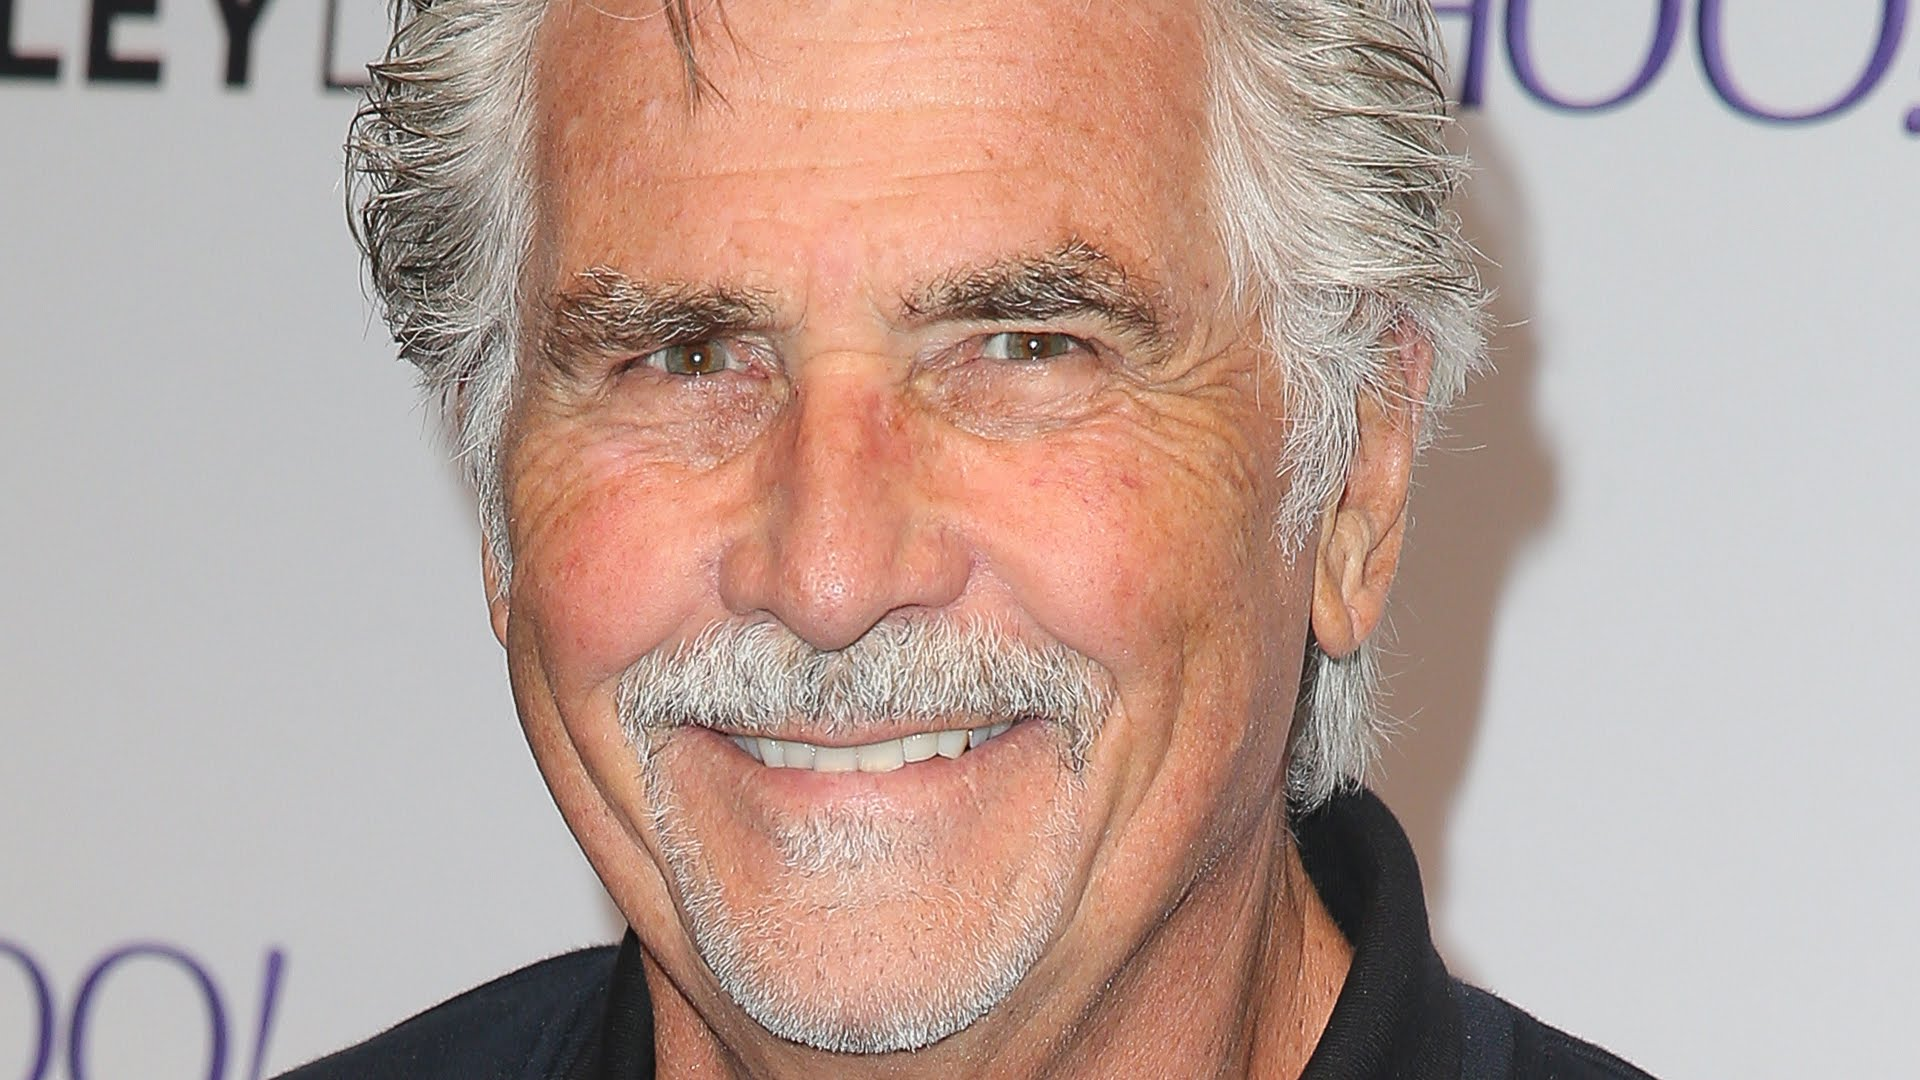 James Brolin Wallpapers hd